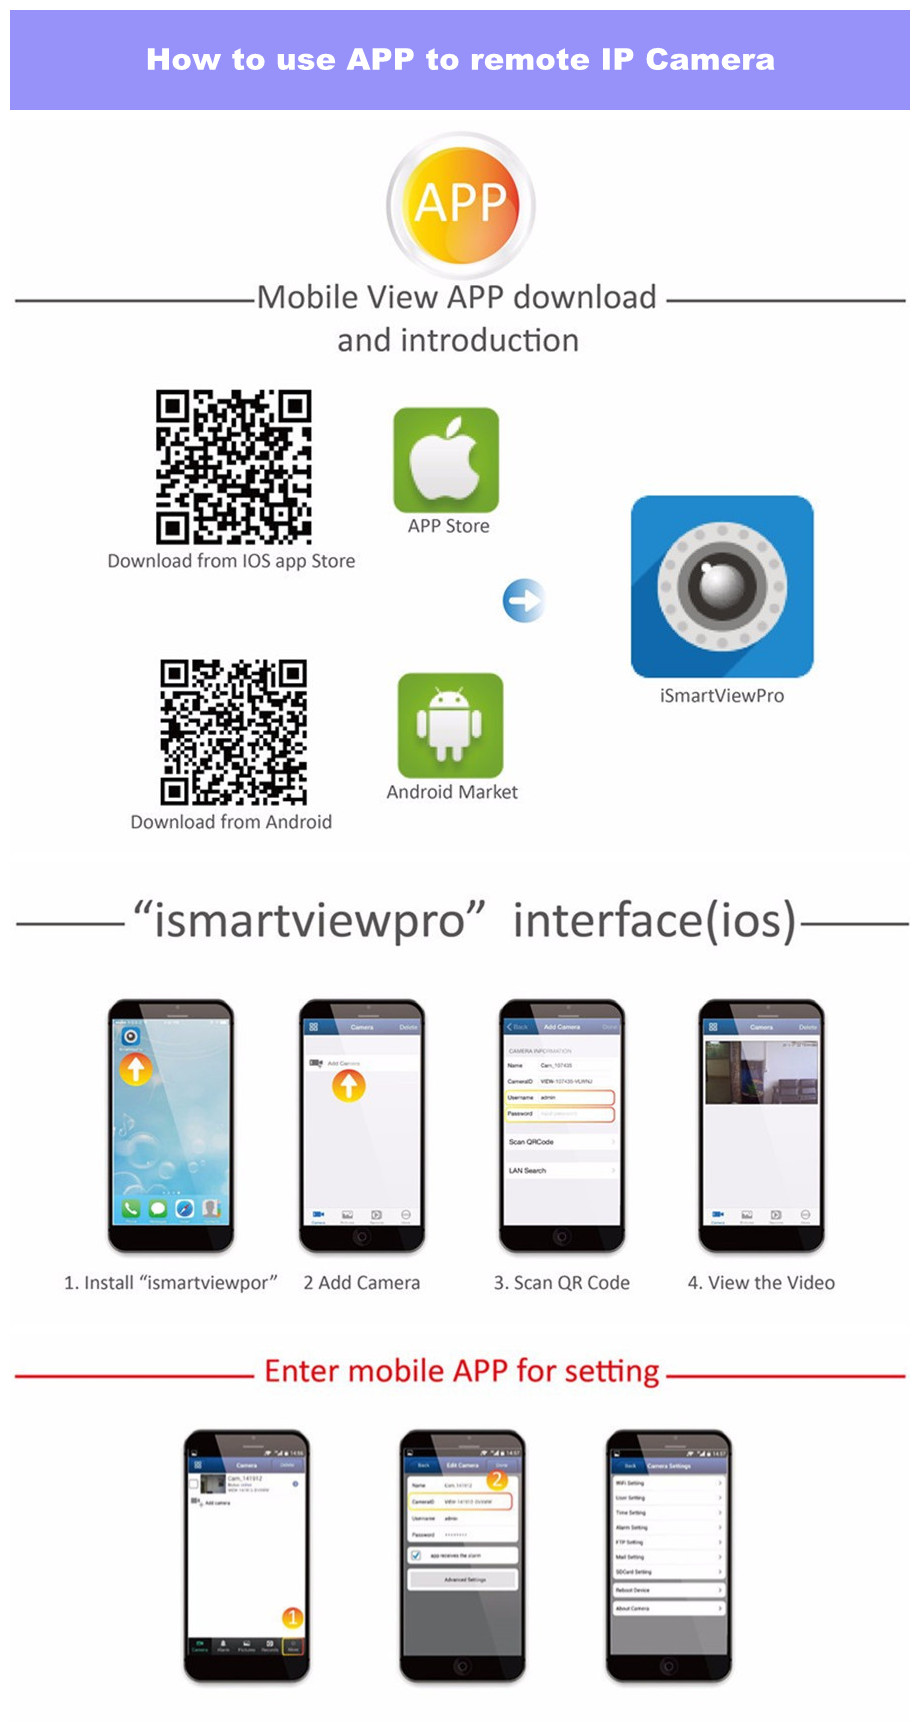 how to use APP